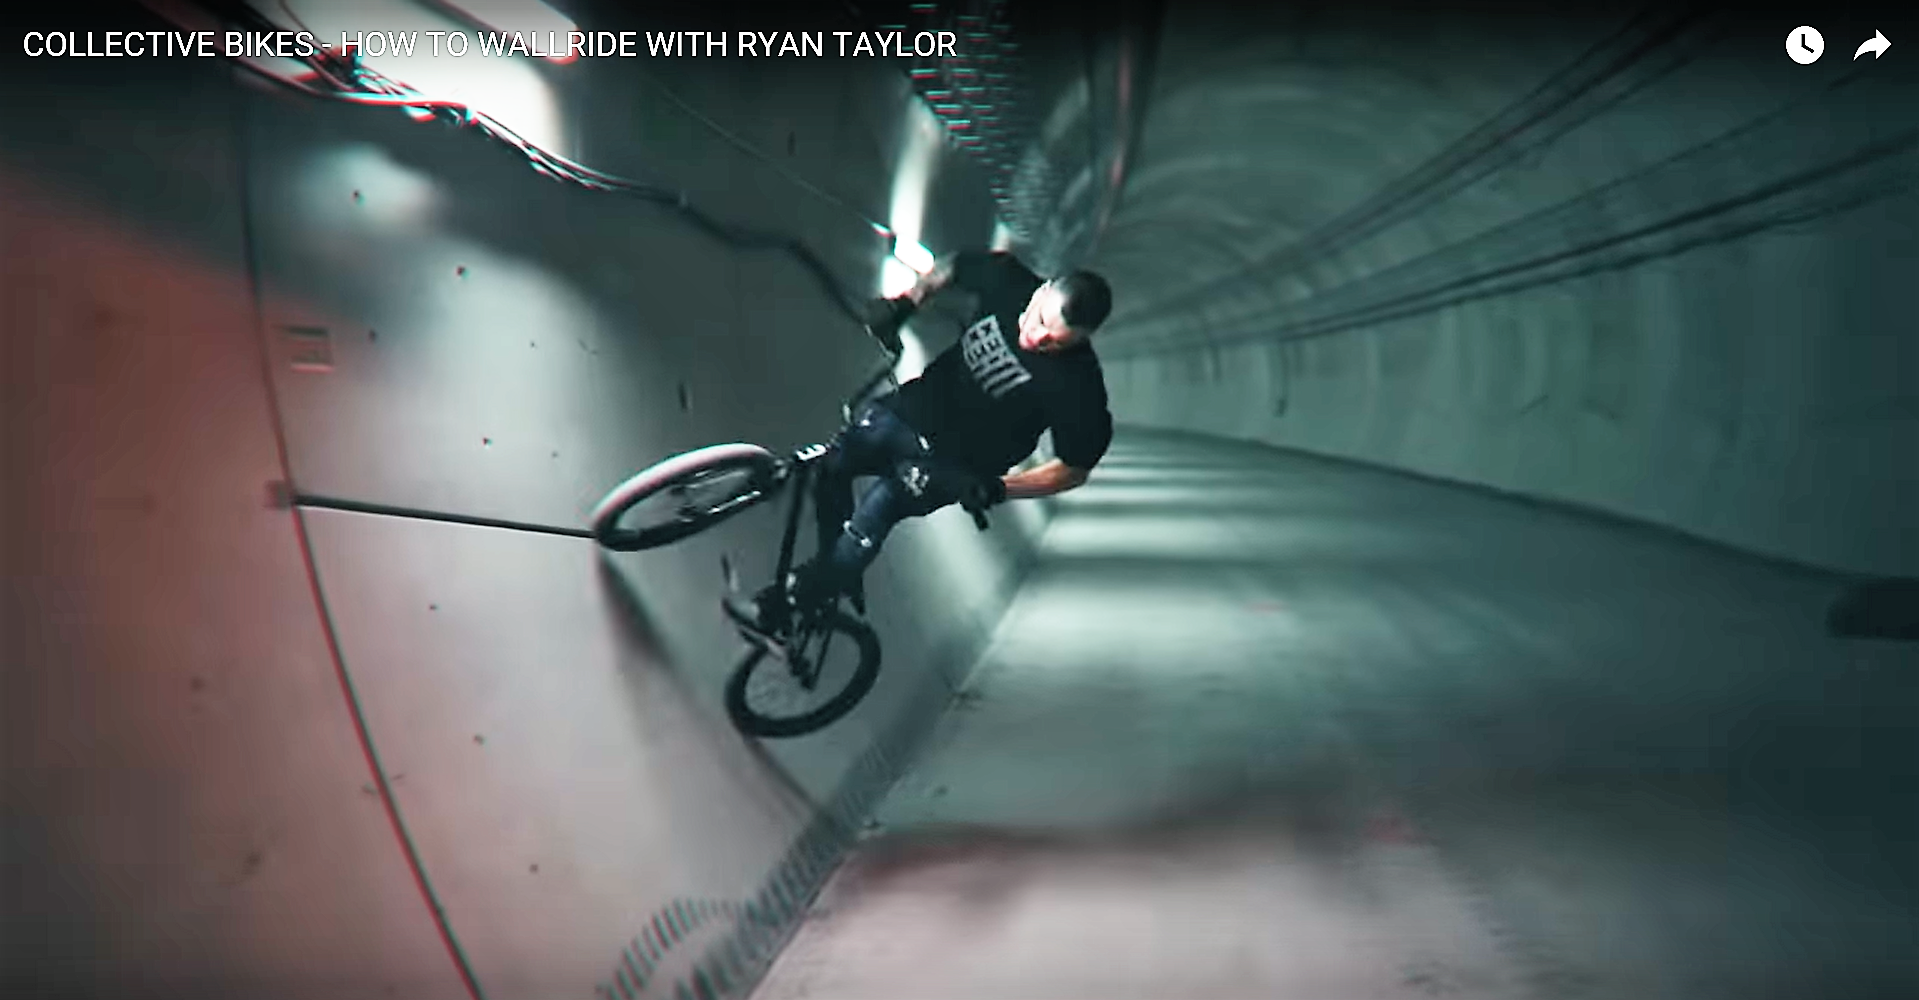 COLLECTIVE BIKES – HOW TO WALLRIDE WITH RYAN TAYLOR